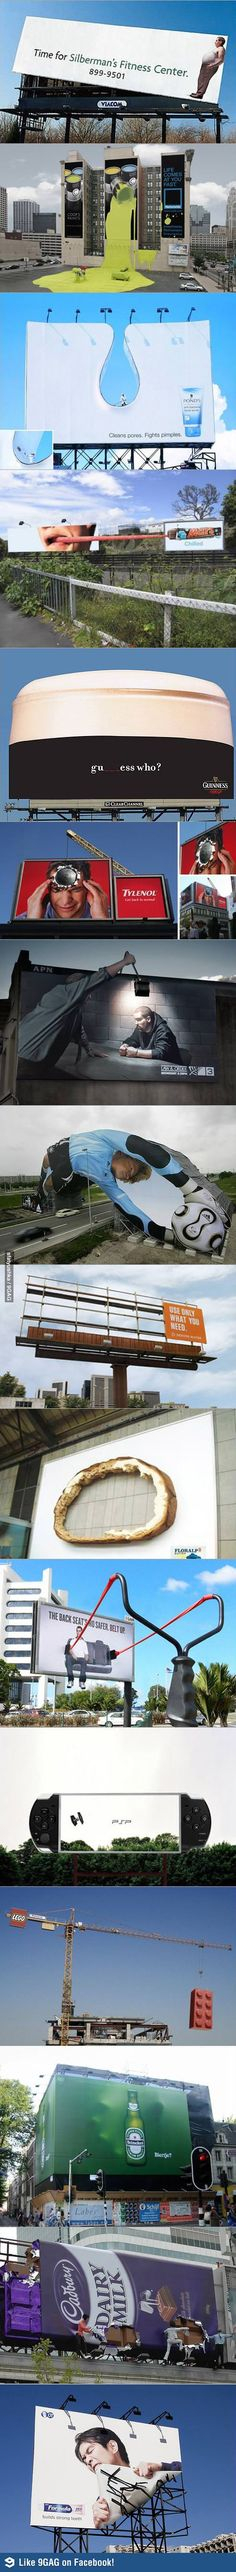 Awesome billboards are awesome